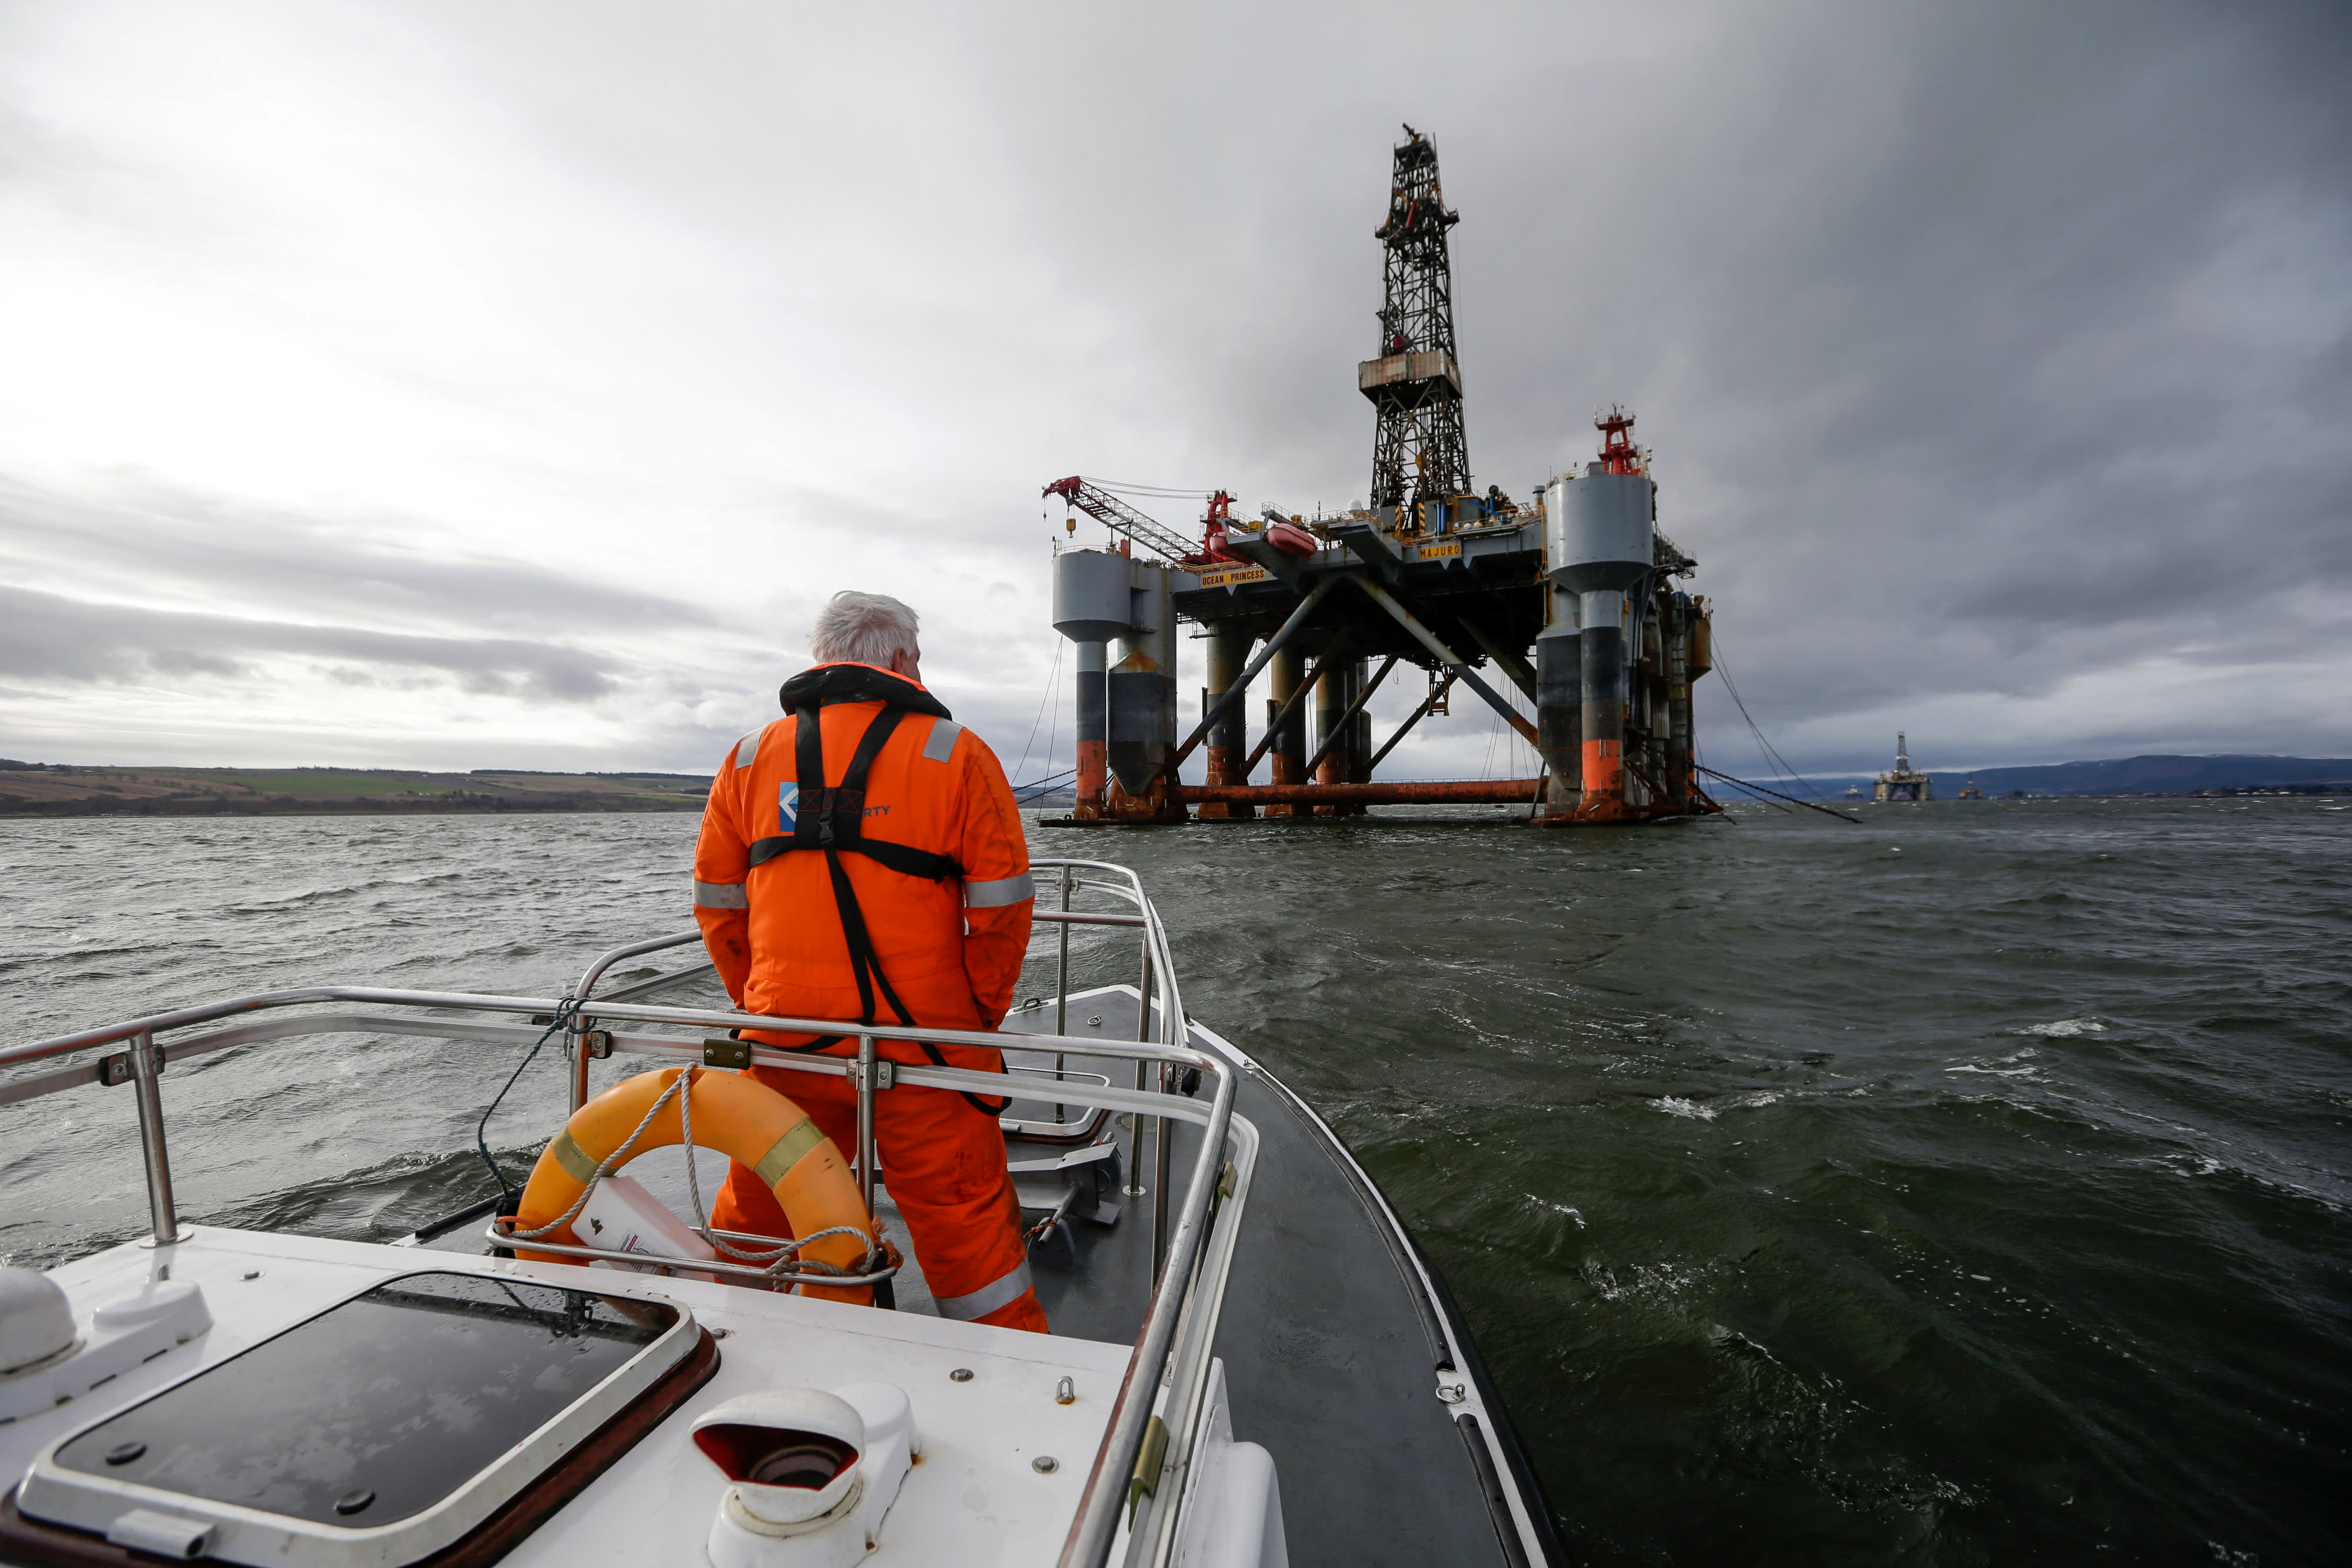 GP: Offshore oil rig Port of Cromarty Firth in Cromarty, U.K